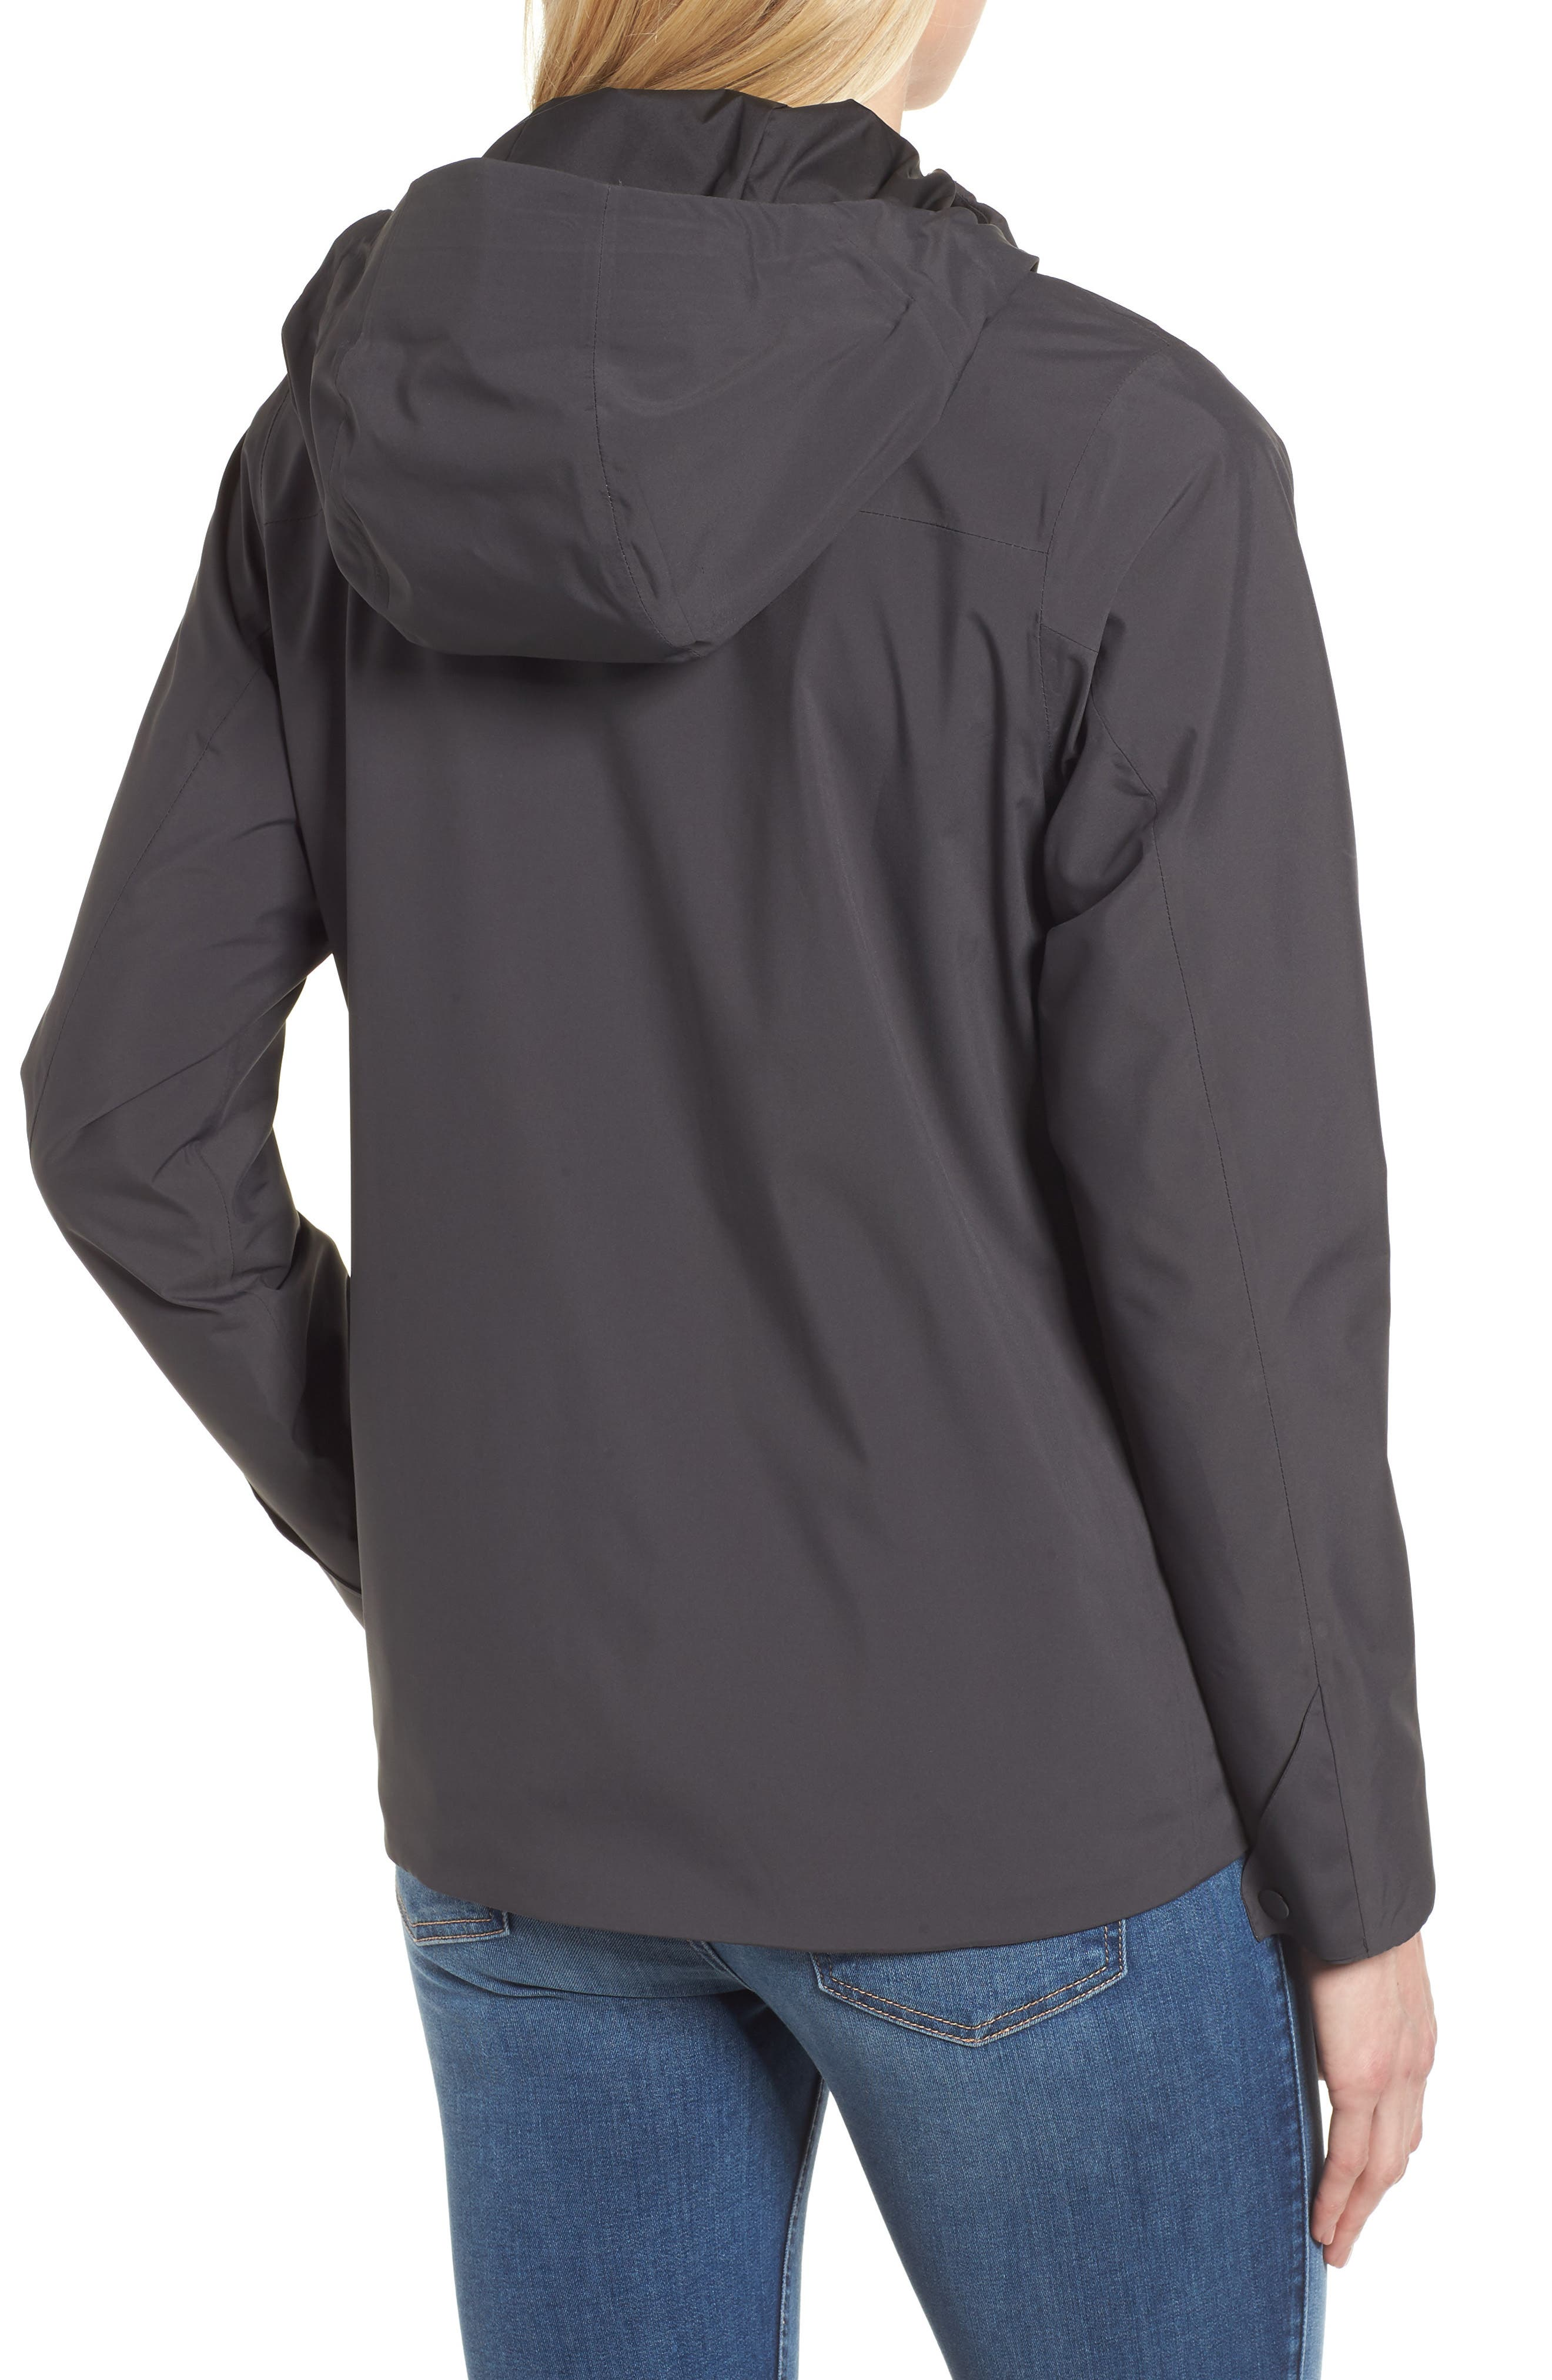 Yosemite Falls Hooded Jacket,                             Alternate thumbnail 2, color,                             001